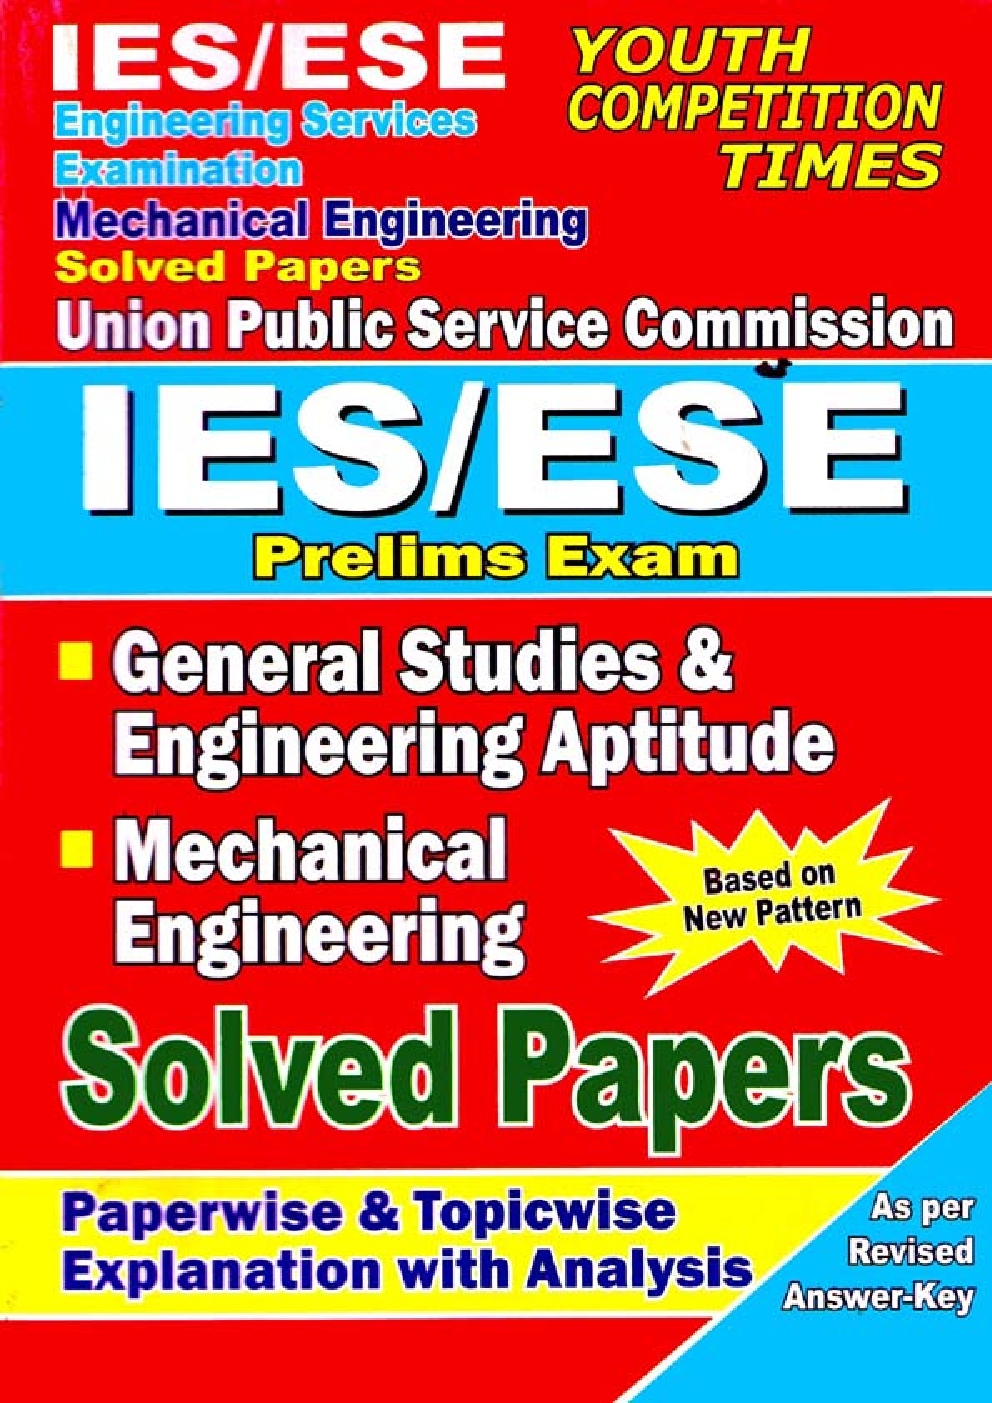 IES/ESE Prelims Exam Mechanical Engineering Solved Papers - Page 1